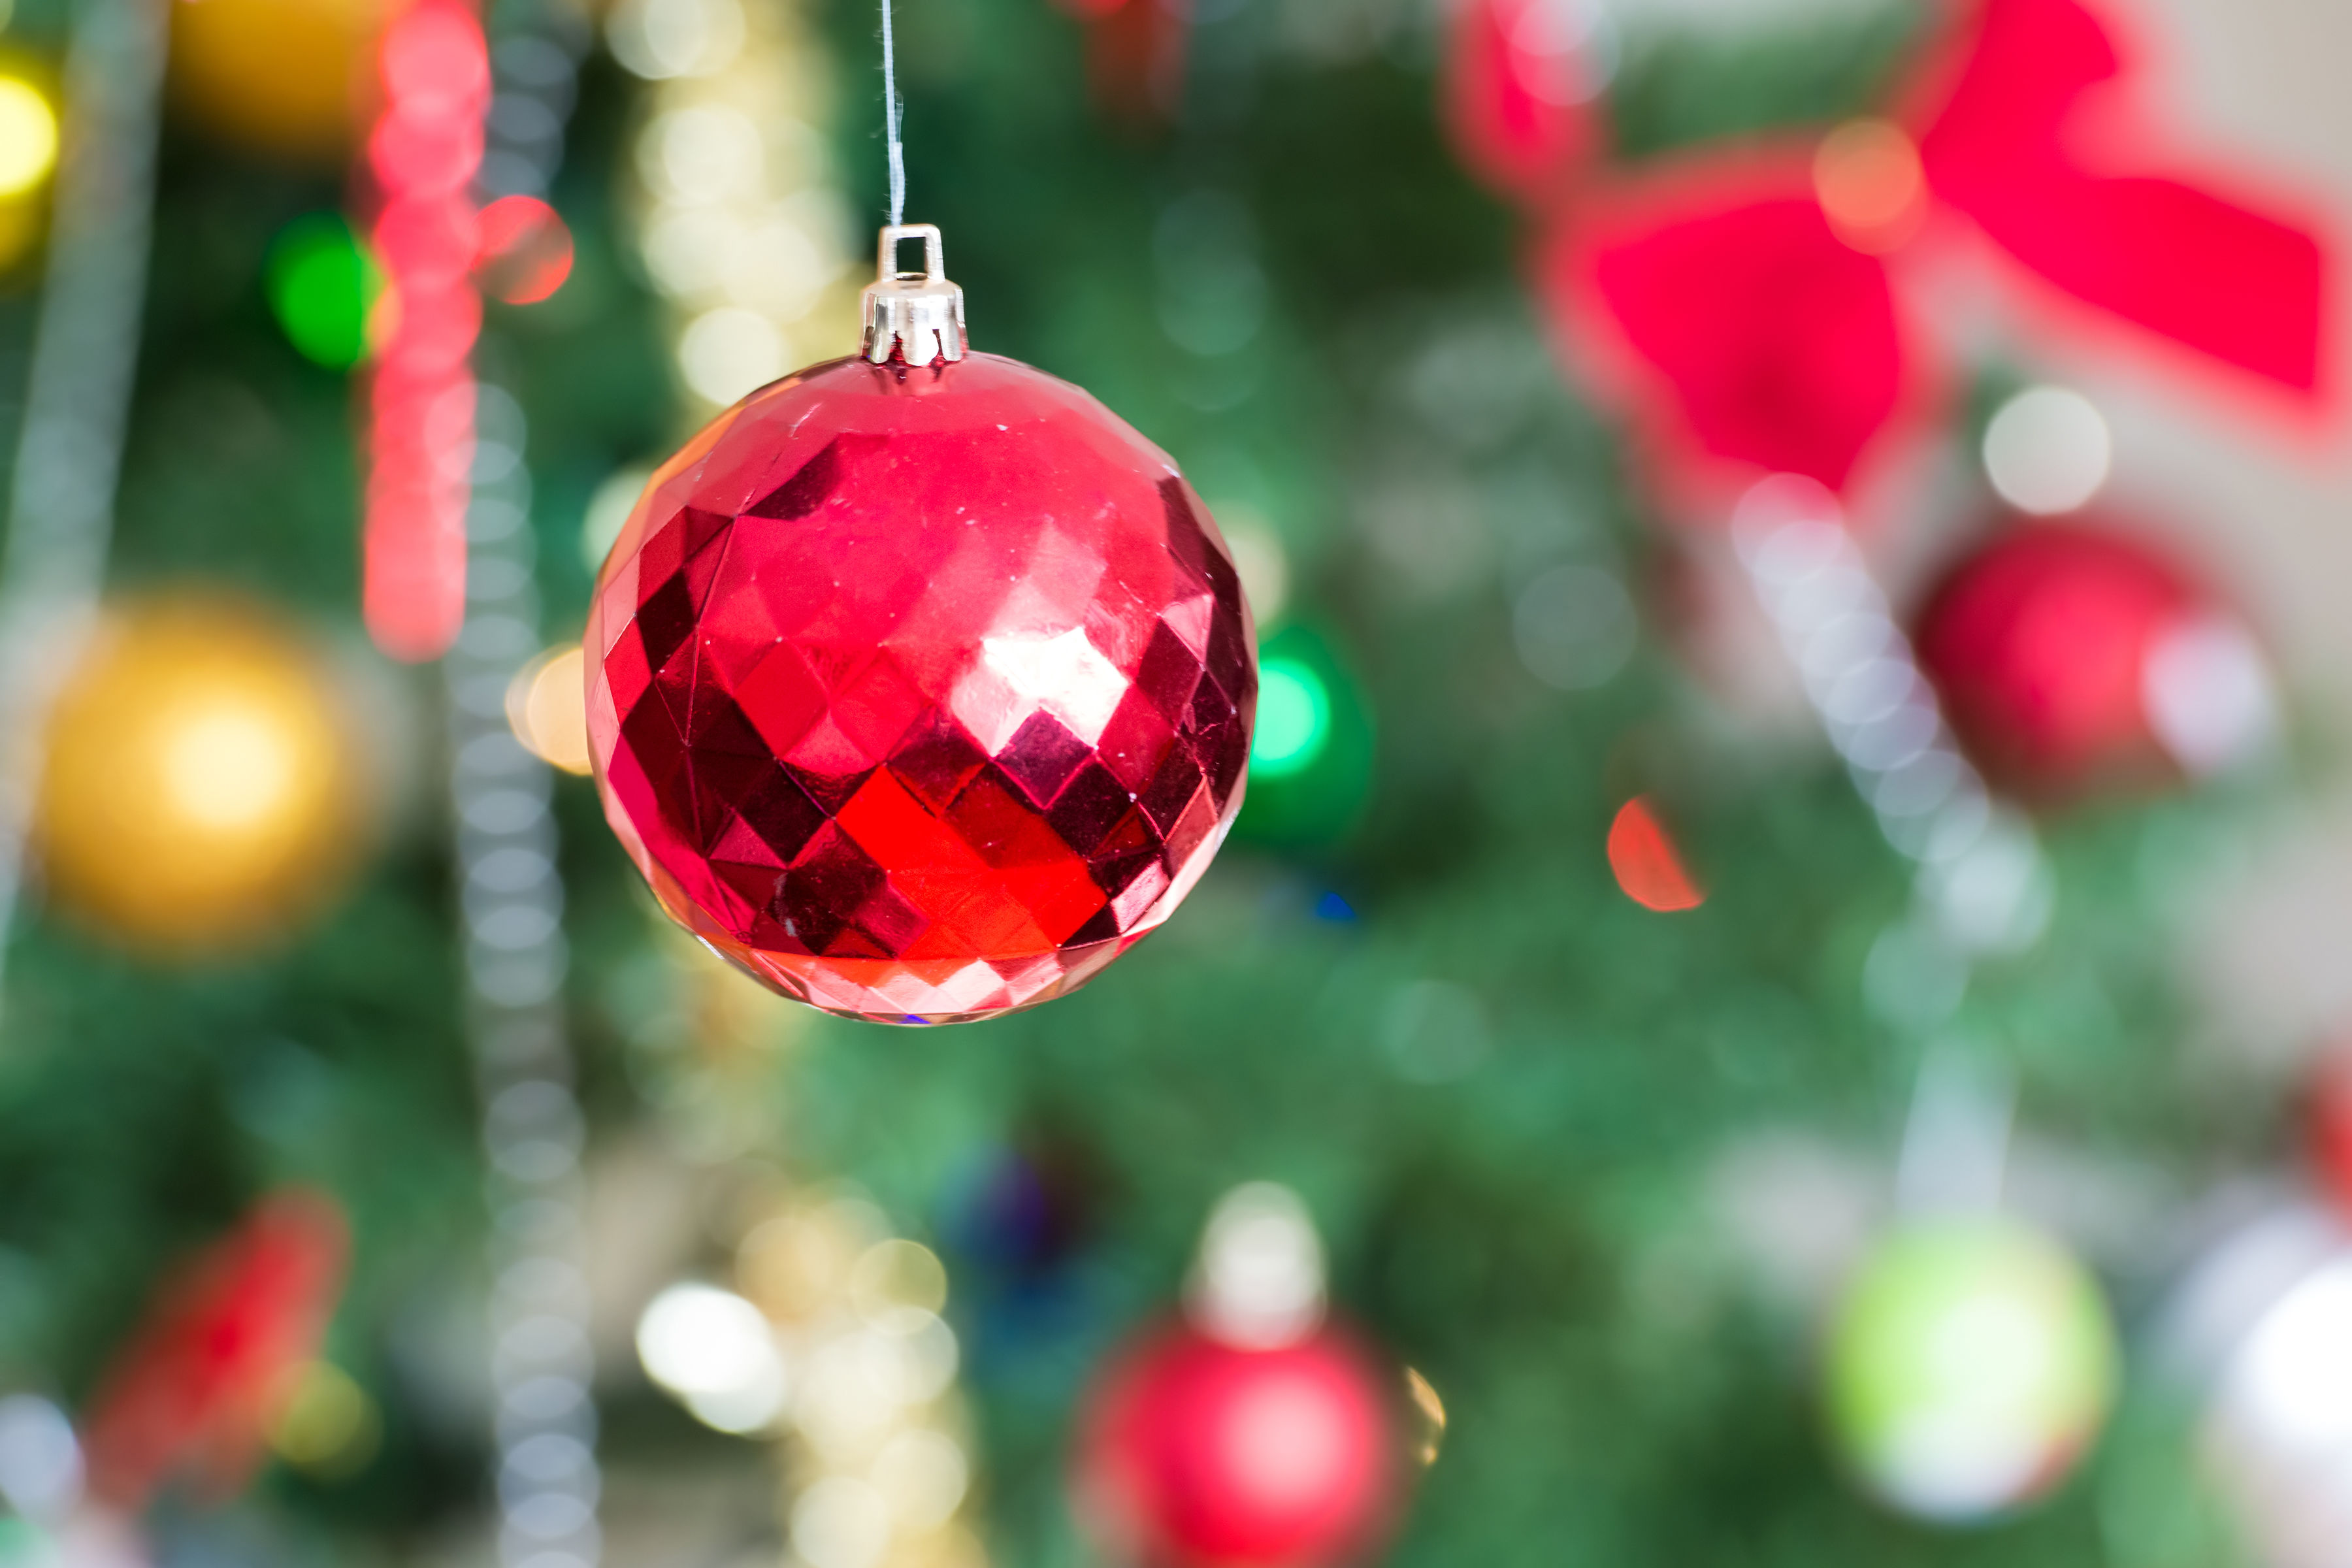 How Red and Green Became the Official Colors of Christmas